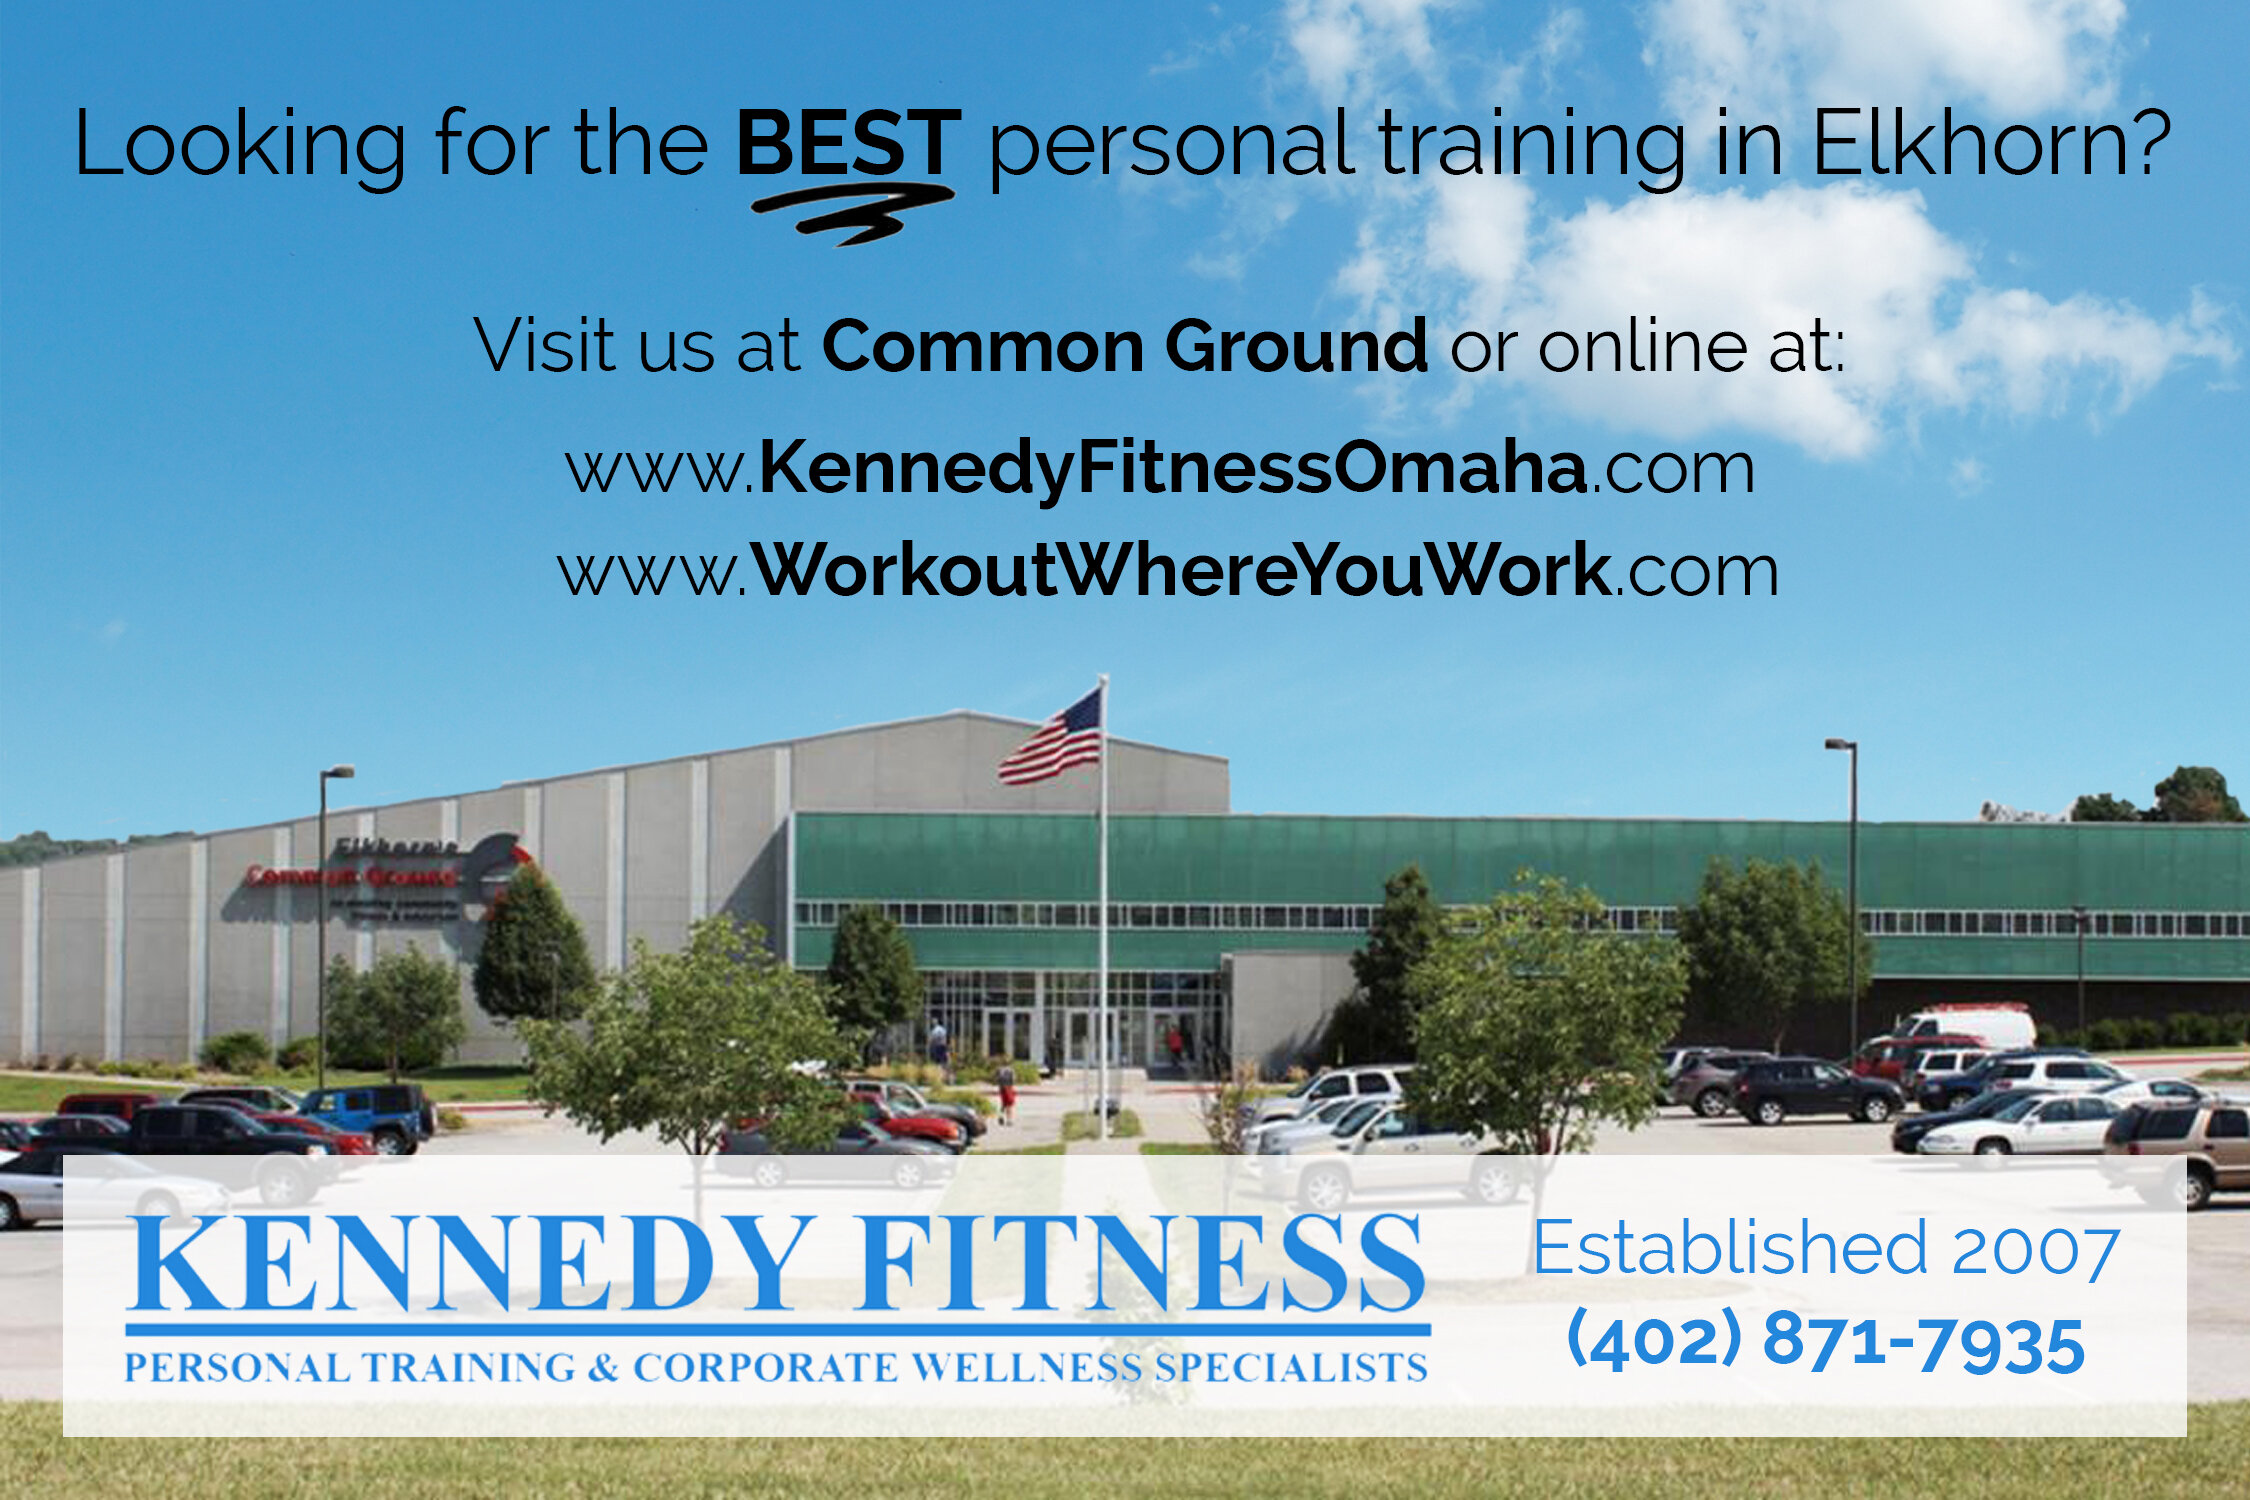 Kennedy Fitness - Half Page - Color (1).jpg